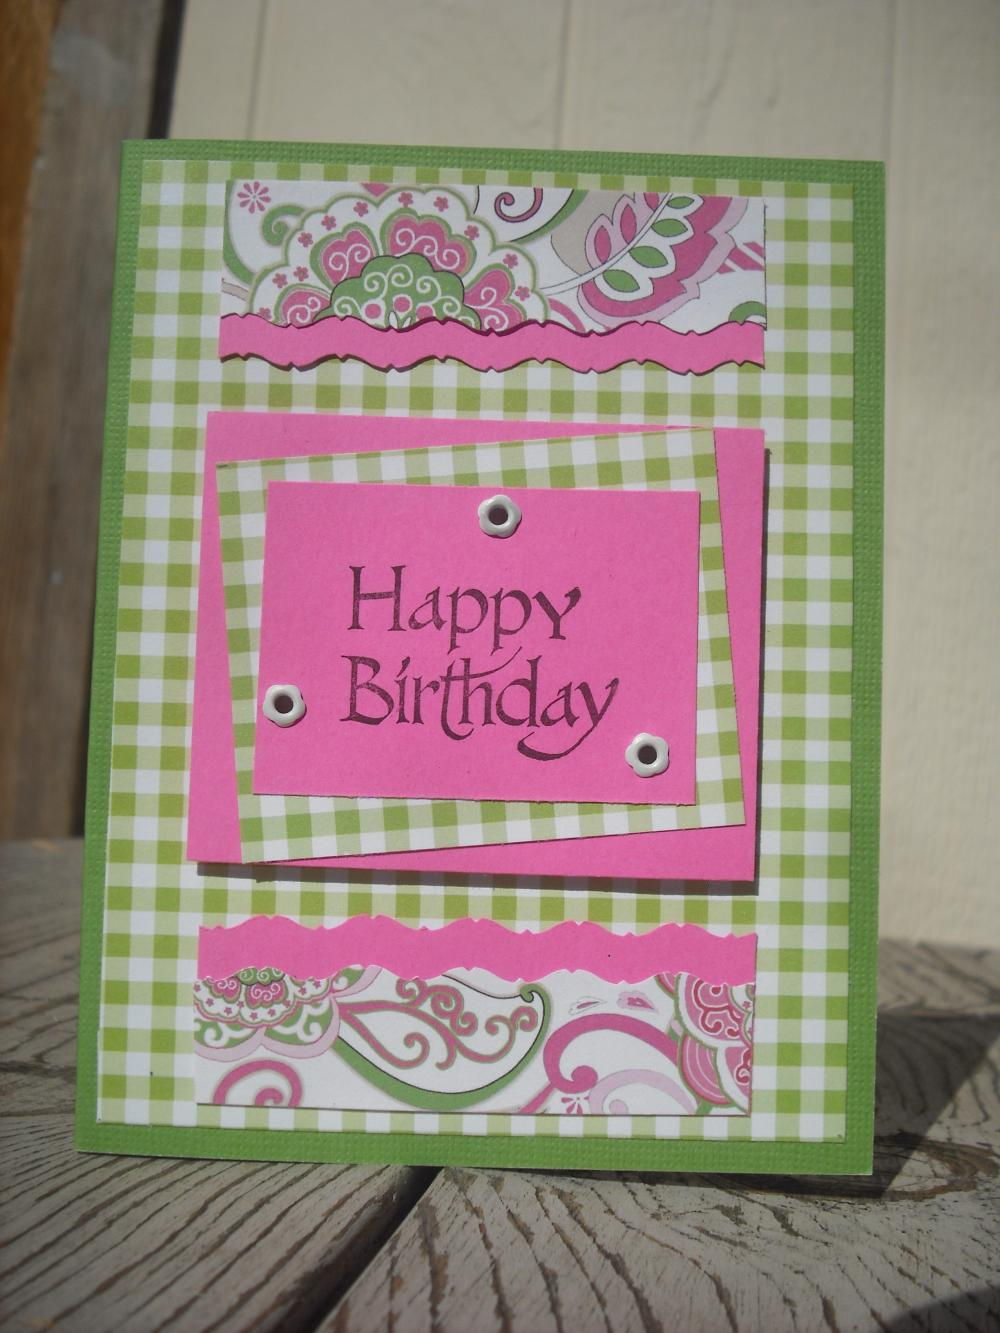 SALE Handmade Pink & Green Happy Birthday Greeting Card On